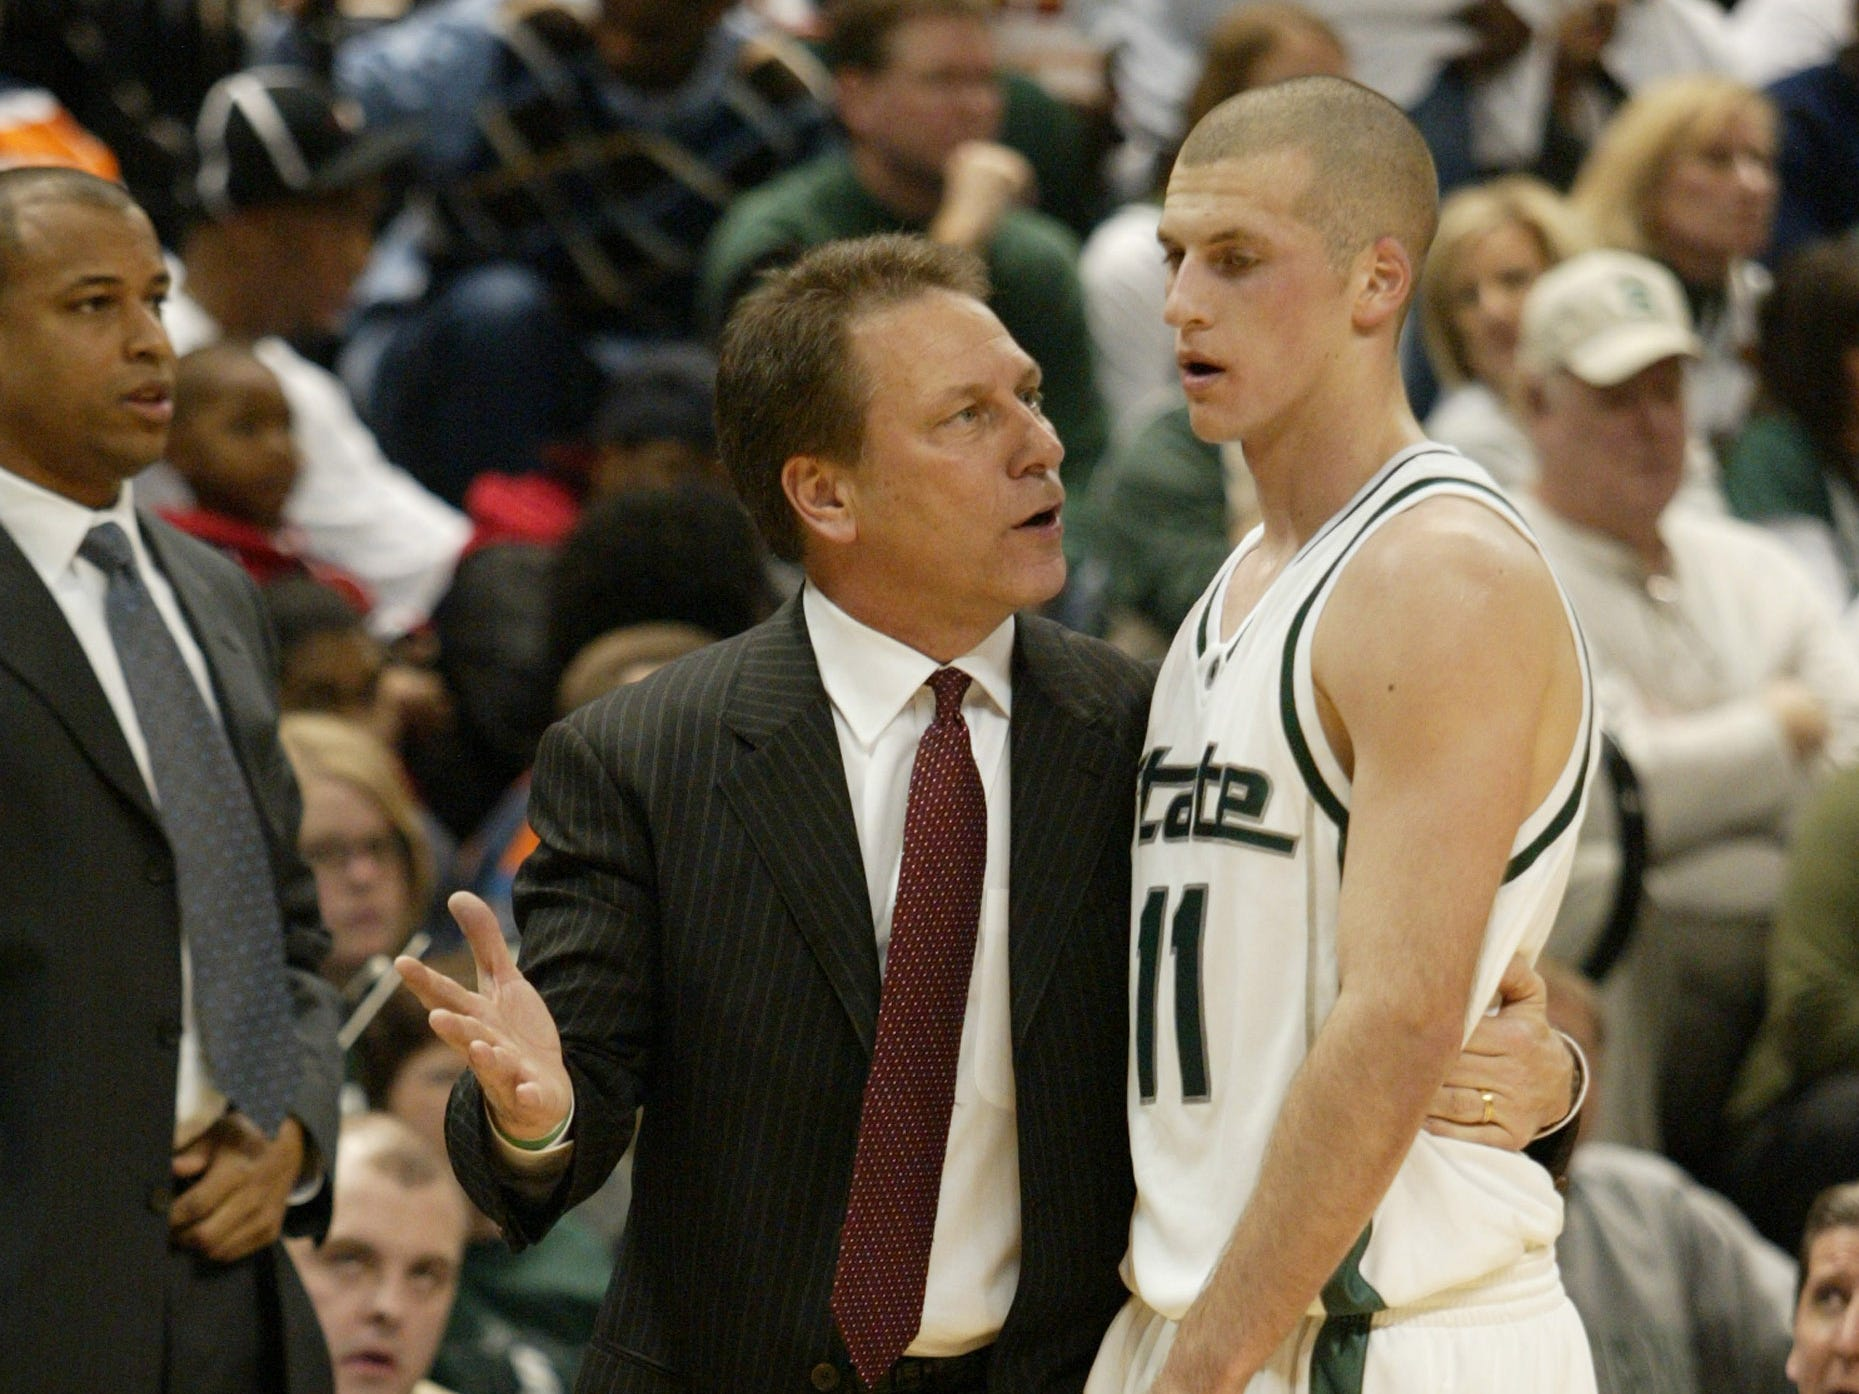 Michigan State head coach Tom Izzo speaks Drew Neitzel (11) as he comes off the court in the Spartans'  90-71 victory over Michigan on Feb. 18, 2006, in East Lansing. Assistant coach Mark Montgomery is in the background.